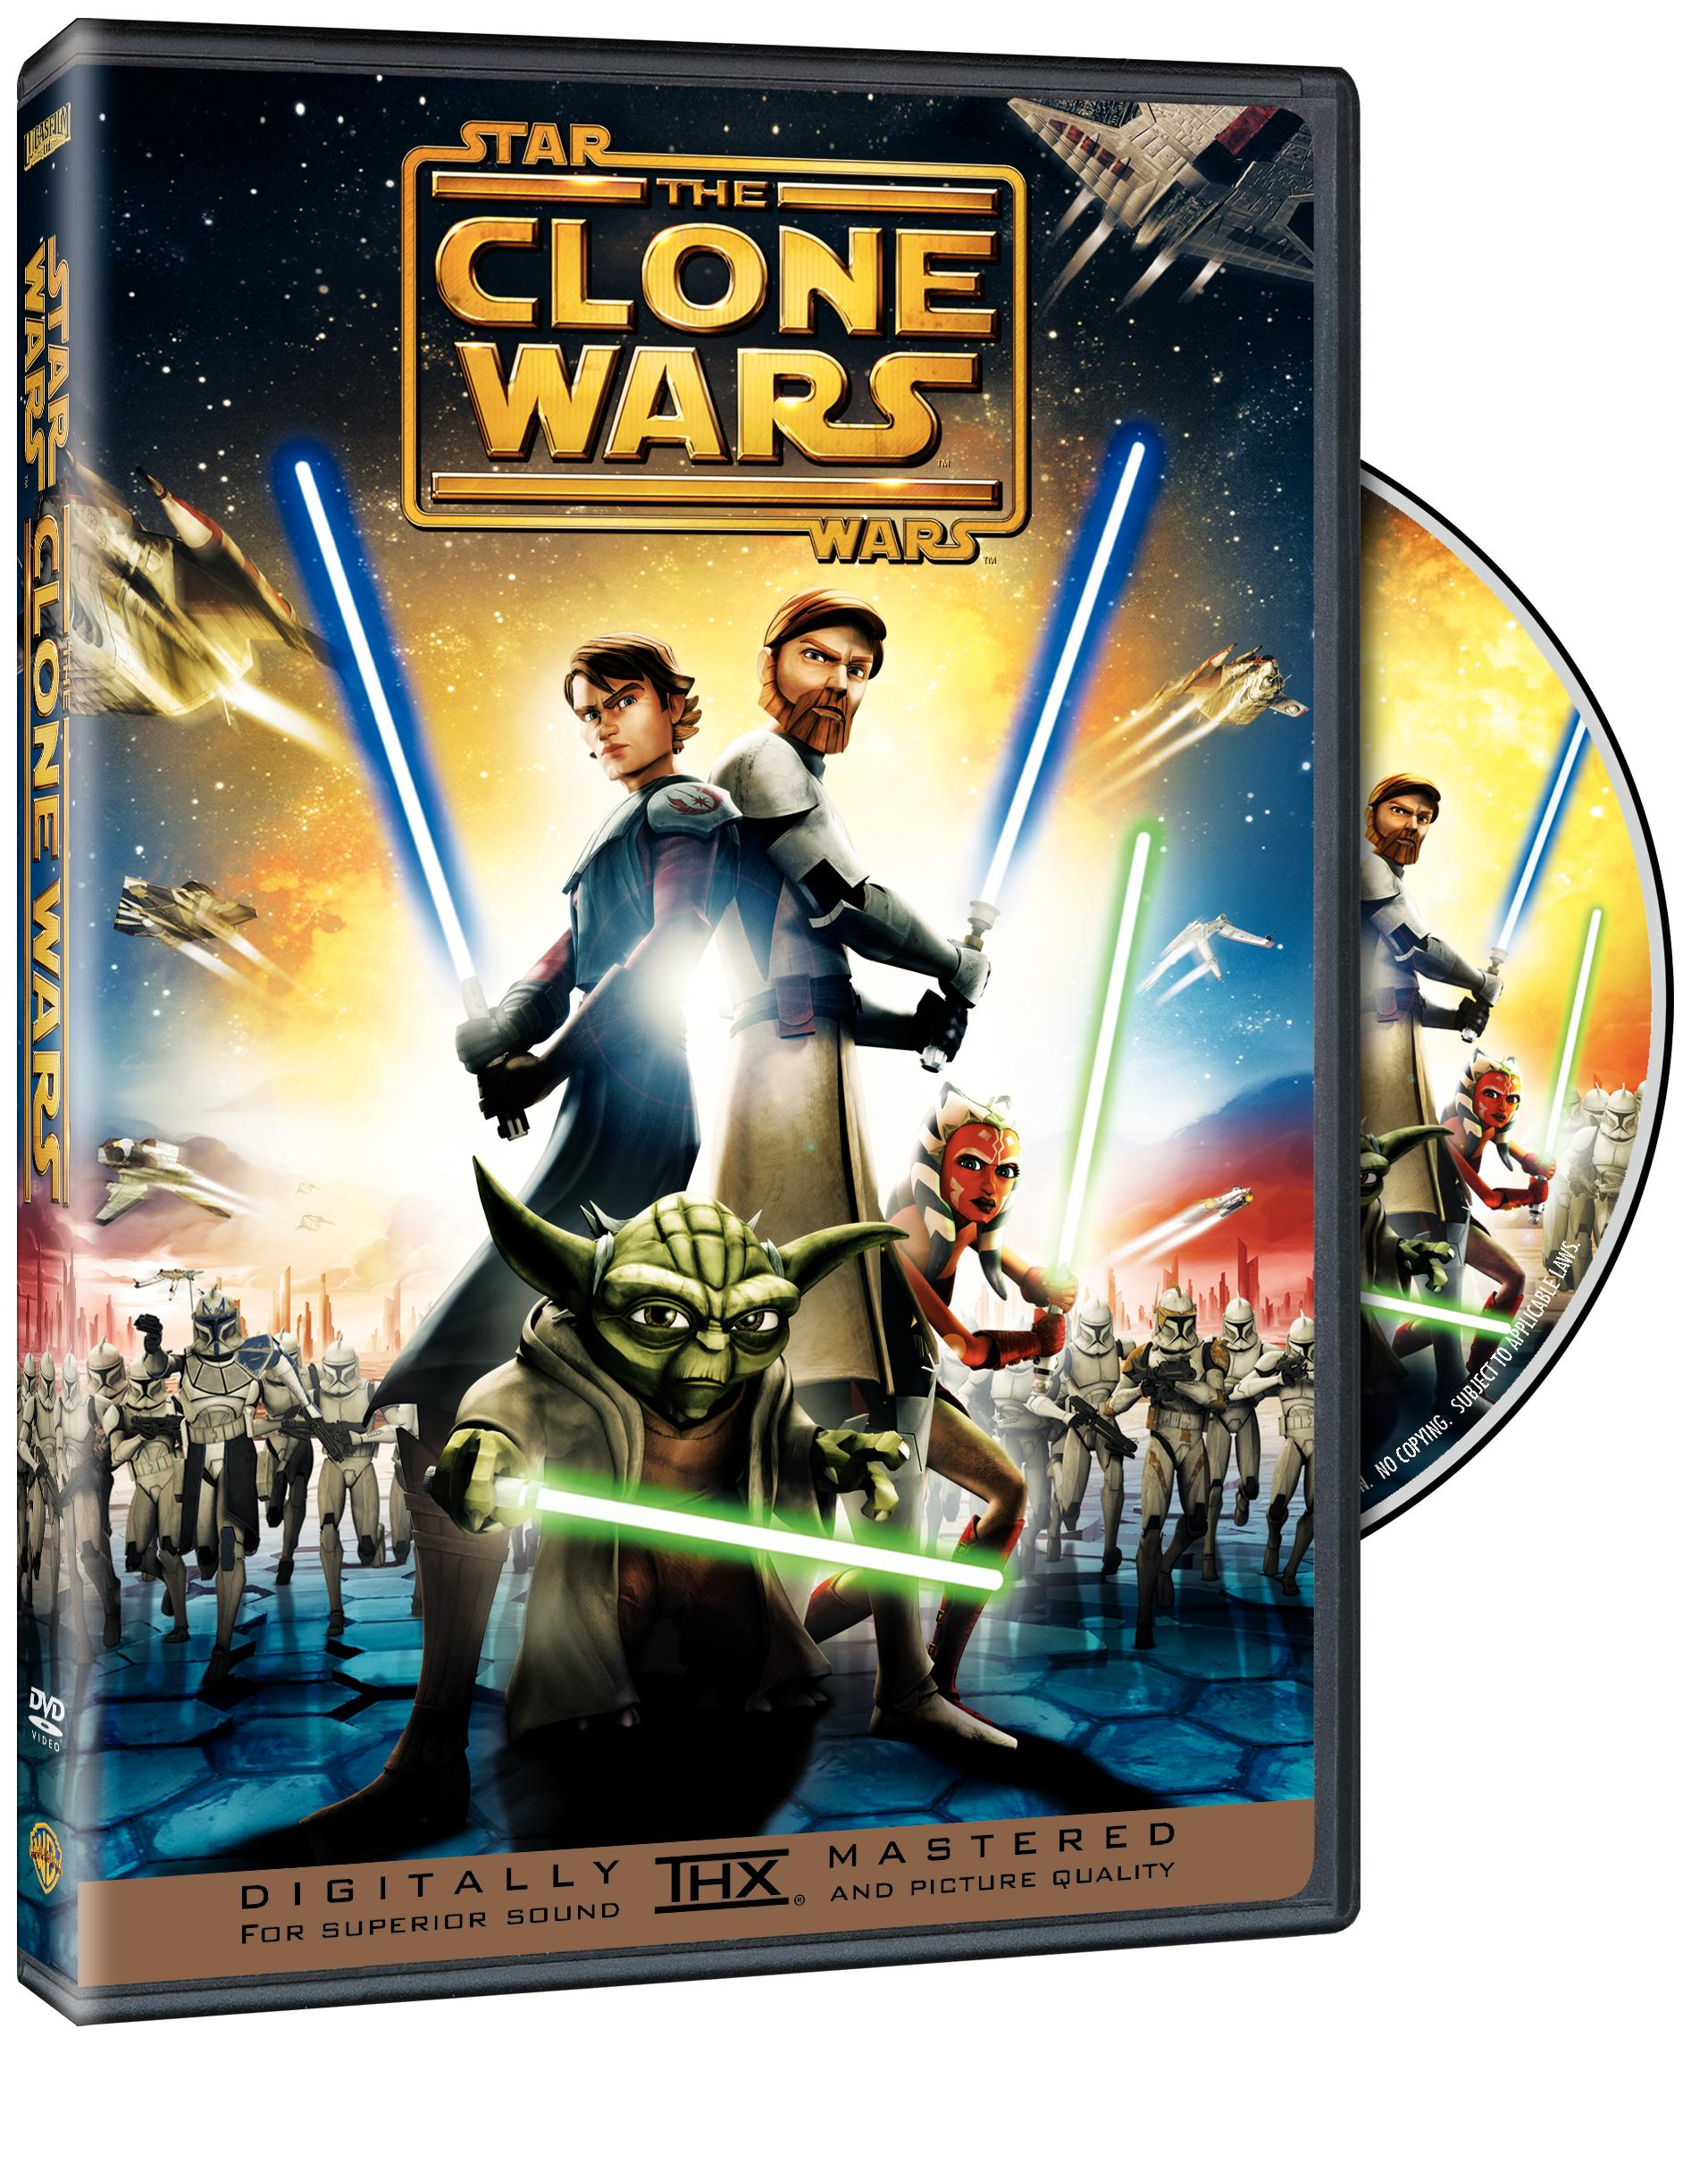 star wars clone wars dvd So, a big thank you to Tara Lynn of YarnOverMovement for such a fantastic ...